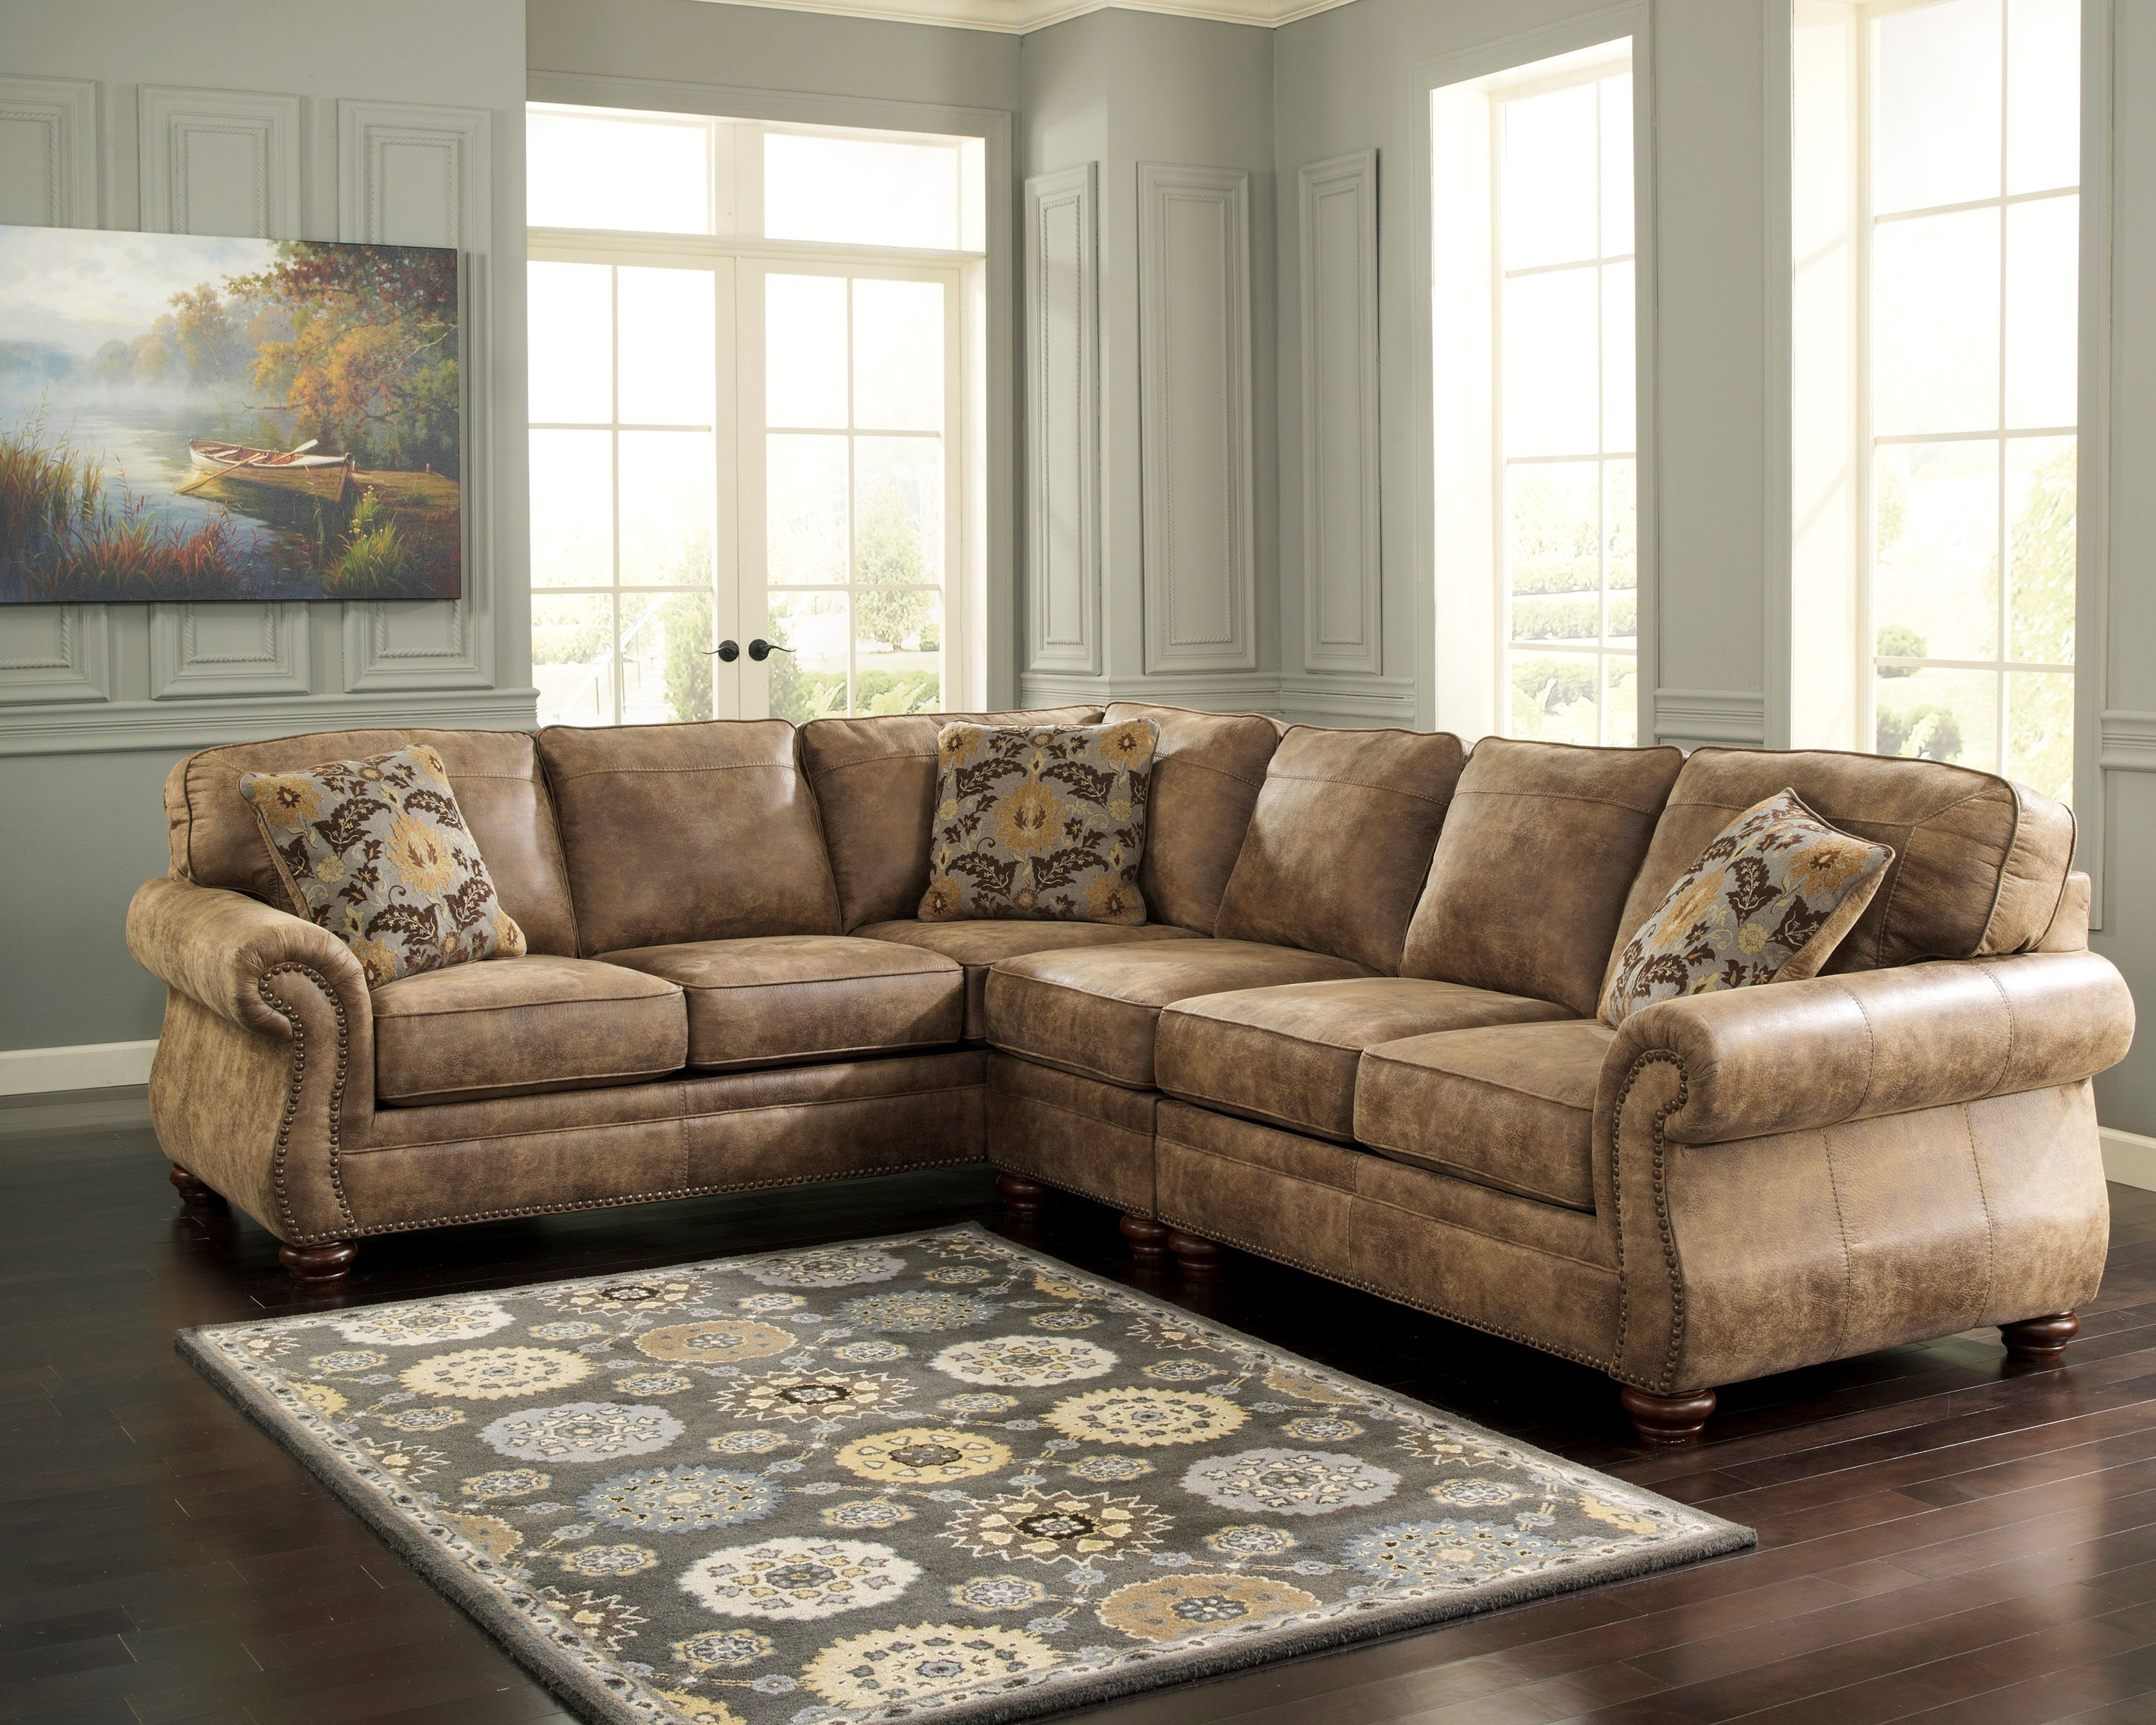 Laf Sofa Raf Loveseat | Baci Living Room With Regard To Turdur 2 Piece Sectionals With Laf Loveseat (View 7 of 25)